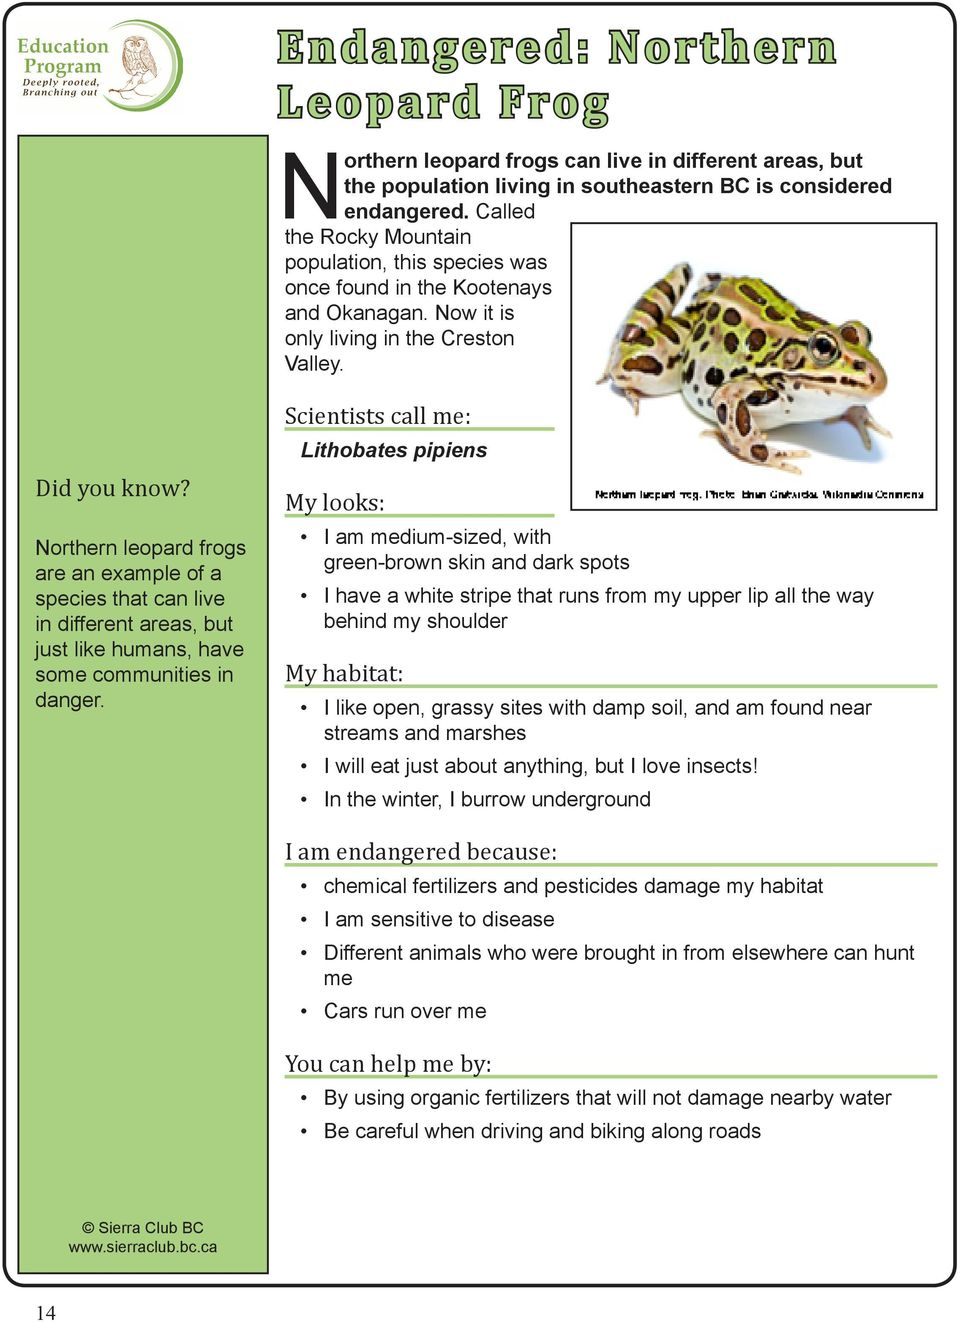 Northern leopard frogs are an example of a species that can live in different areas, but just like humans, have some communities in danger.